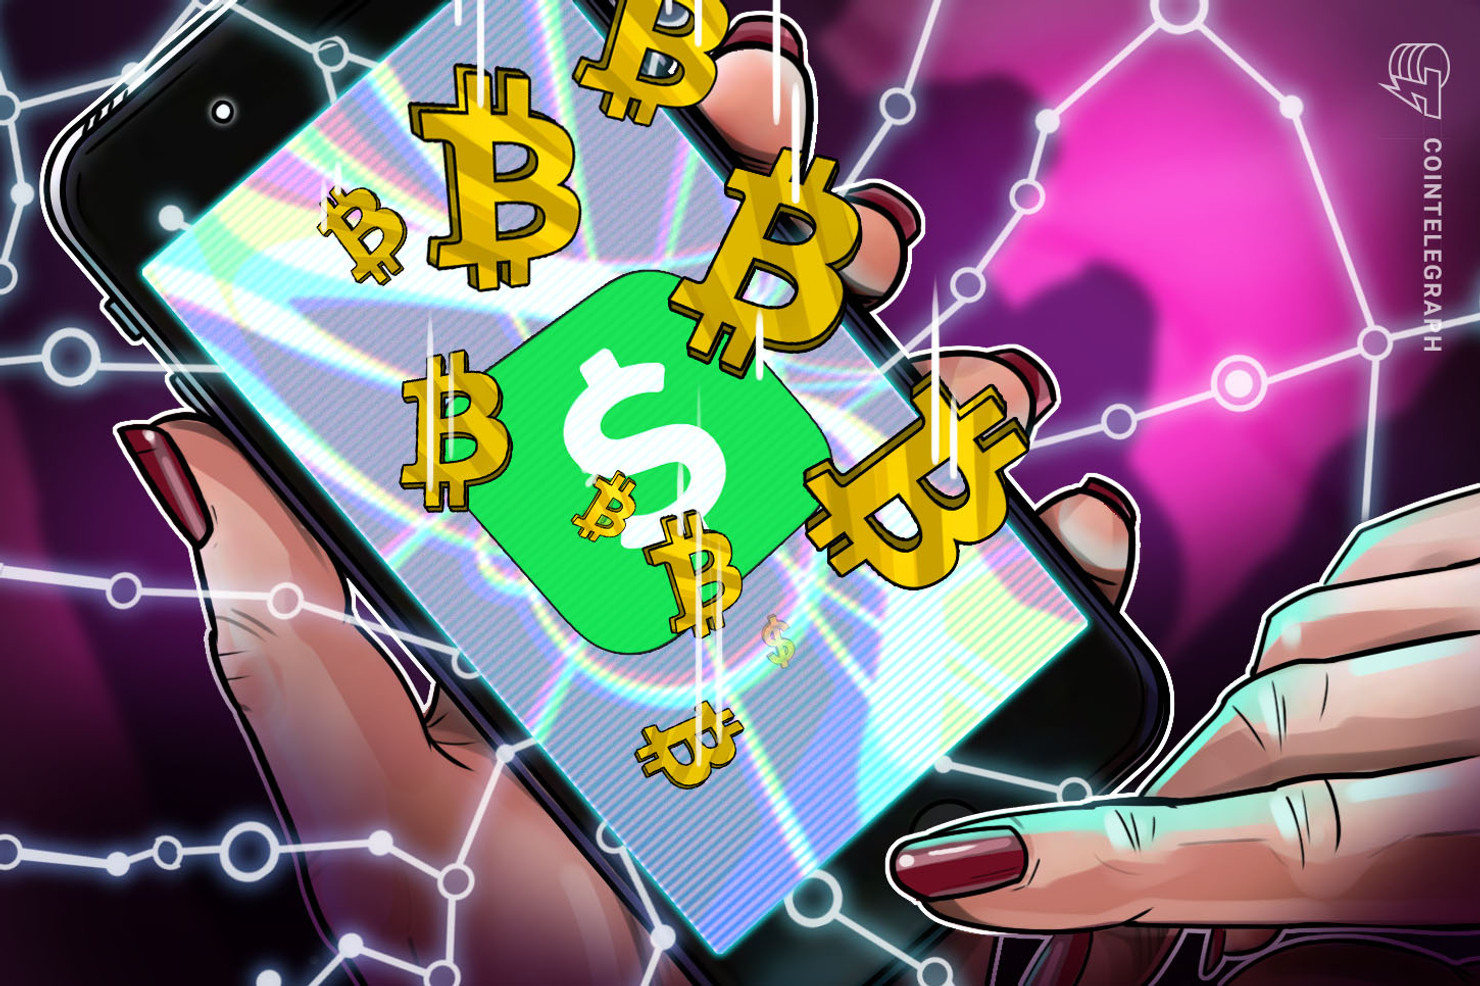 Twitter Co-Founder-Backed Fintech Startup Rolls Out Bitcoin Banking App